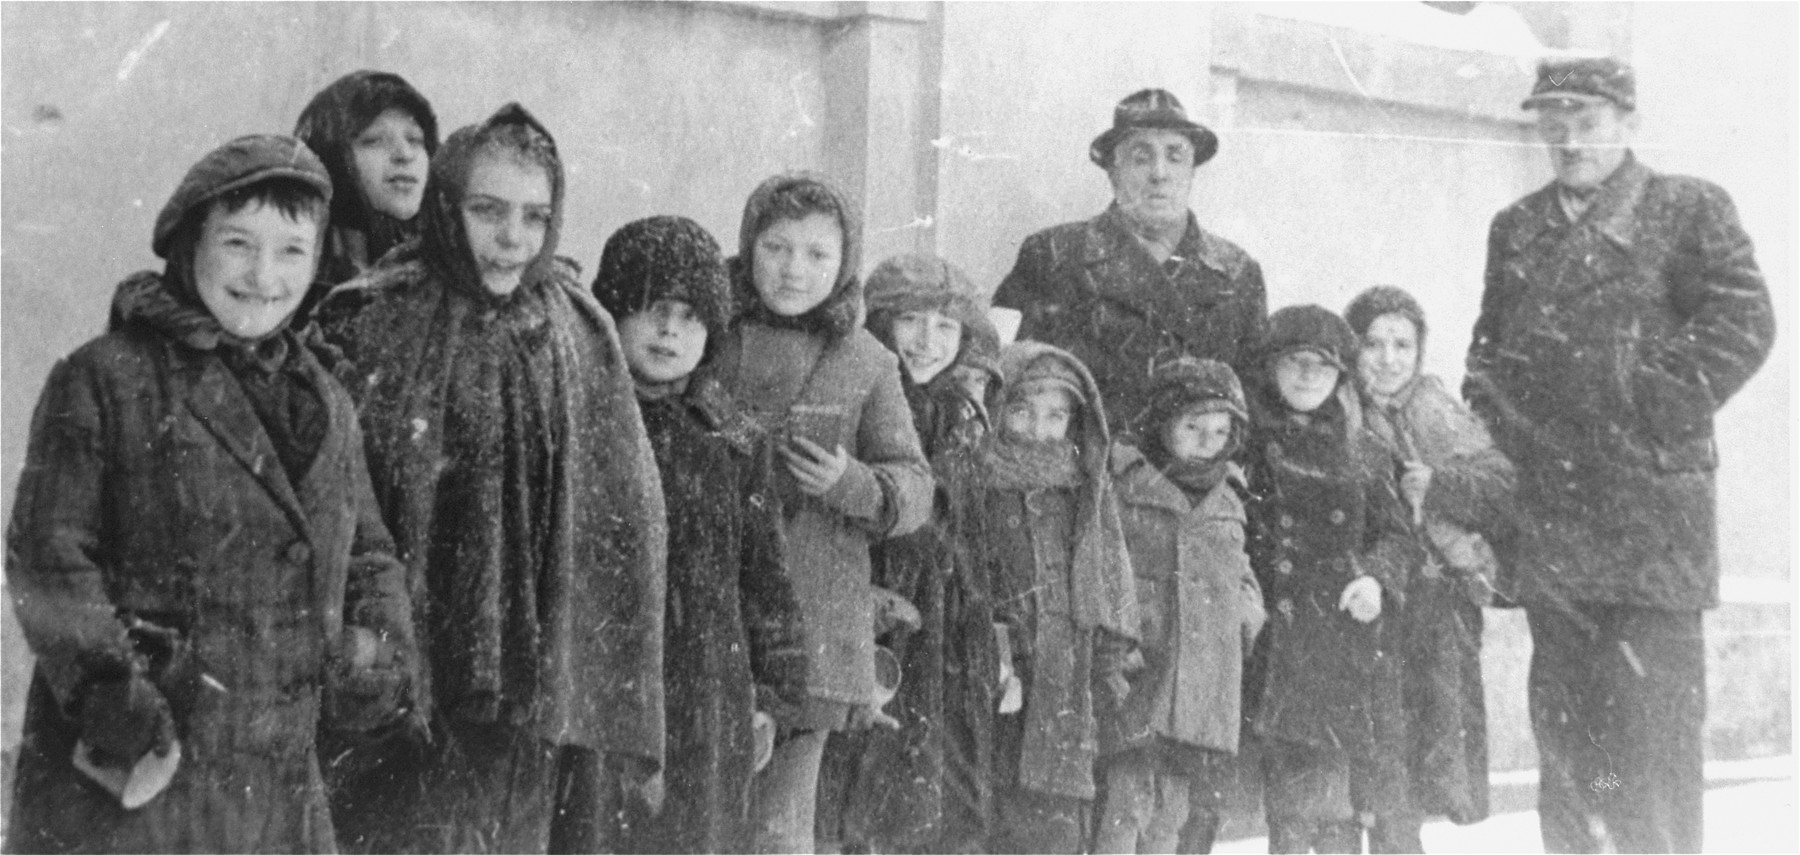 Group portrait of children from a Kielce ghetto orphanage standing on the street.  This photo was one the images included in an official album prepared by the Judenrat of the Kielce ghetto in 1942.